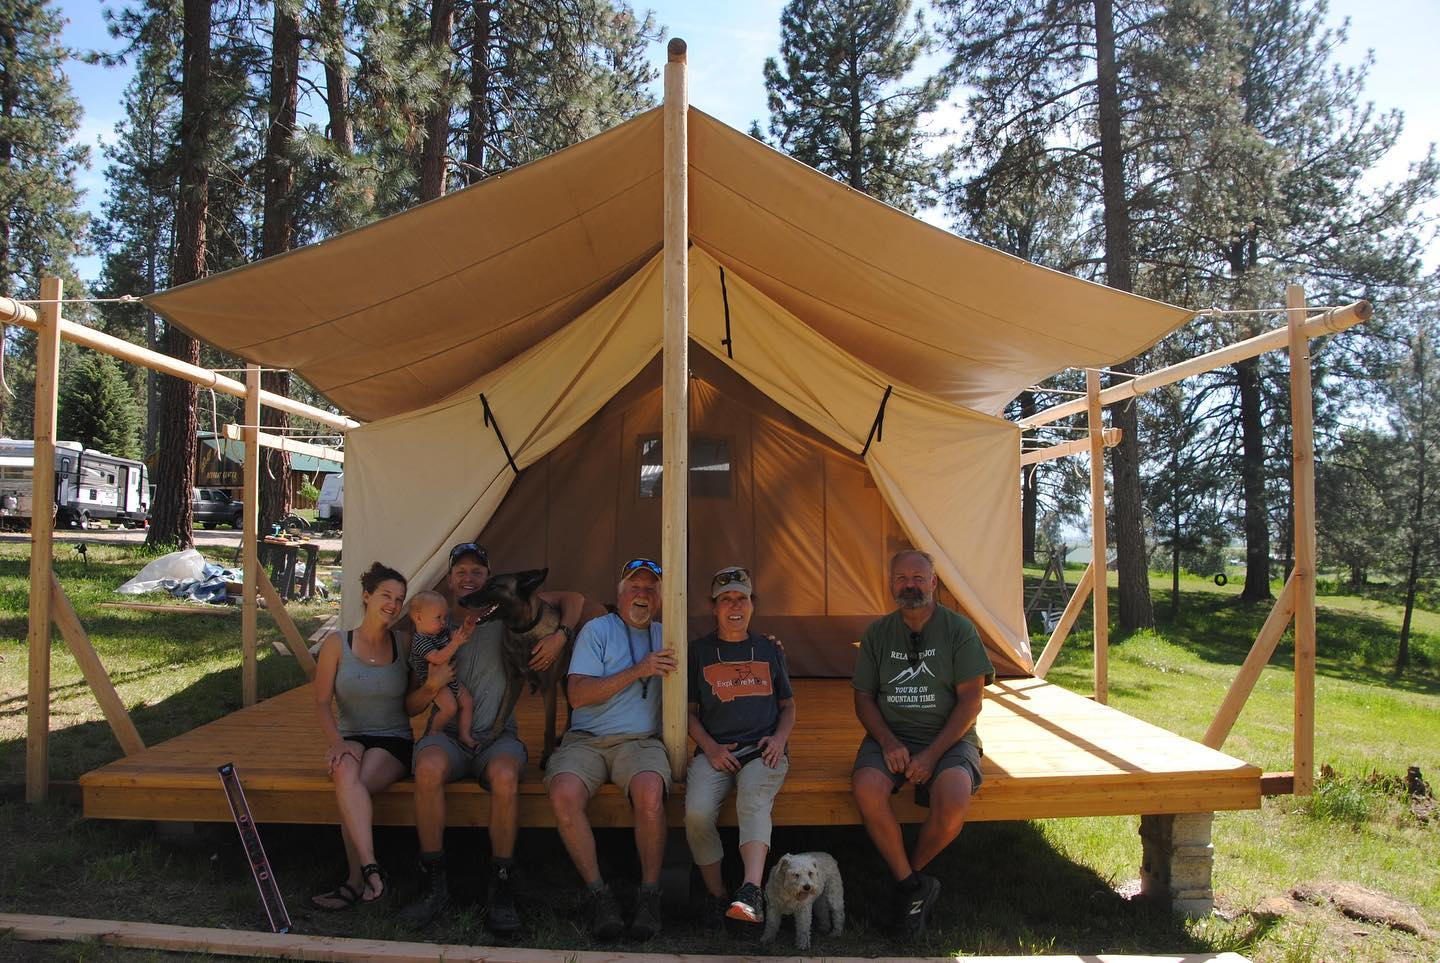 Glamping Tent - Tent Fly - Tent Porch - Porch - Tent Platform